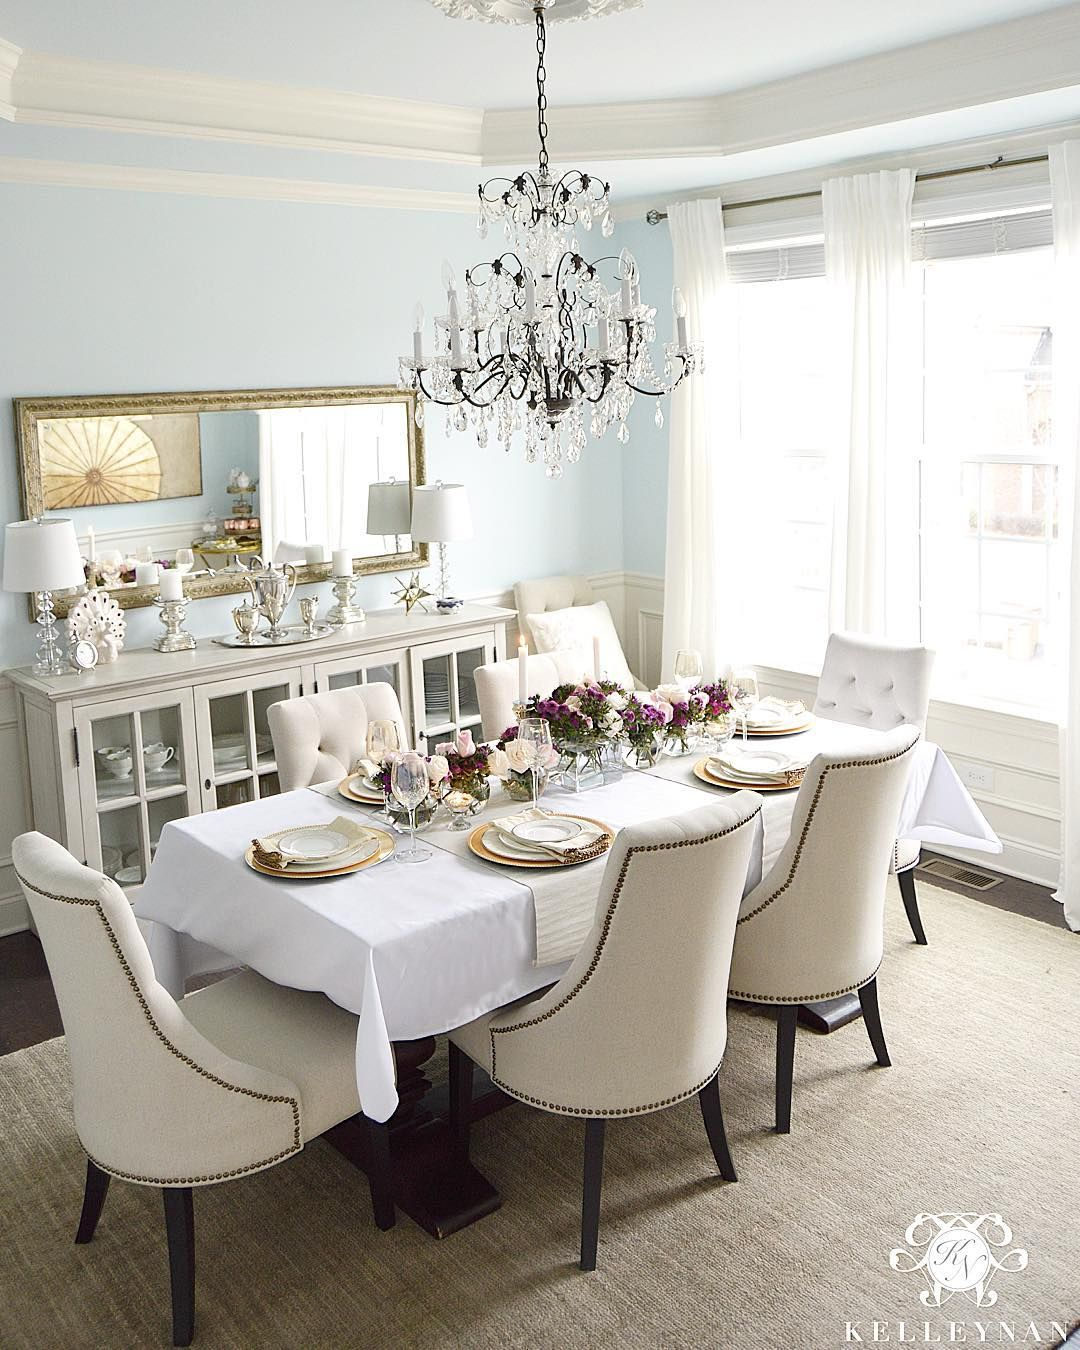 Kelley Nan Kelleynan O Instagram Photos Romantic Dining Room Table